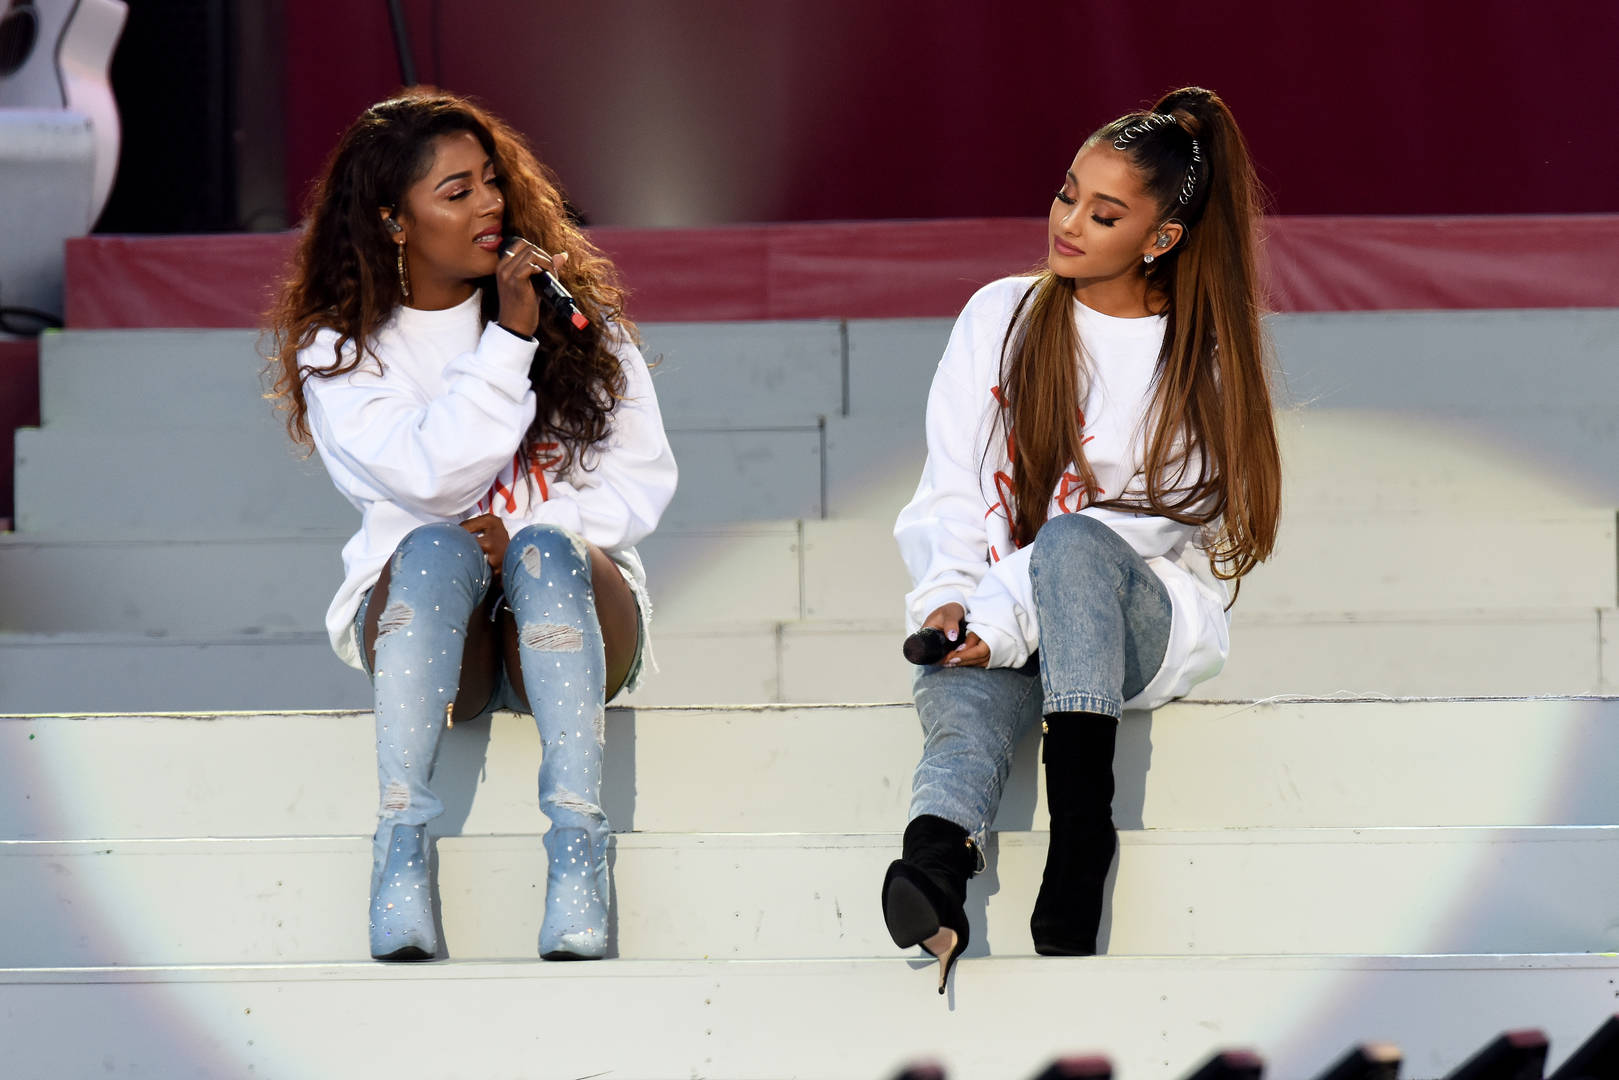 Ariana Grande's new music video features Canadian dance phenomenon